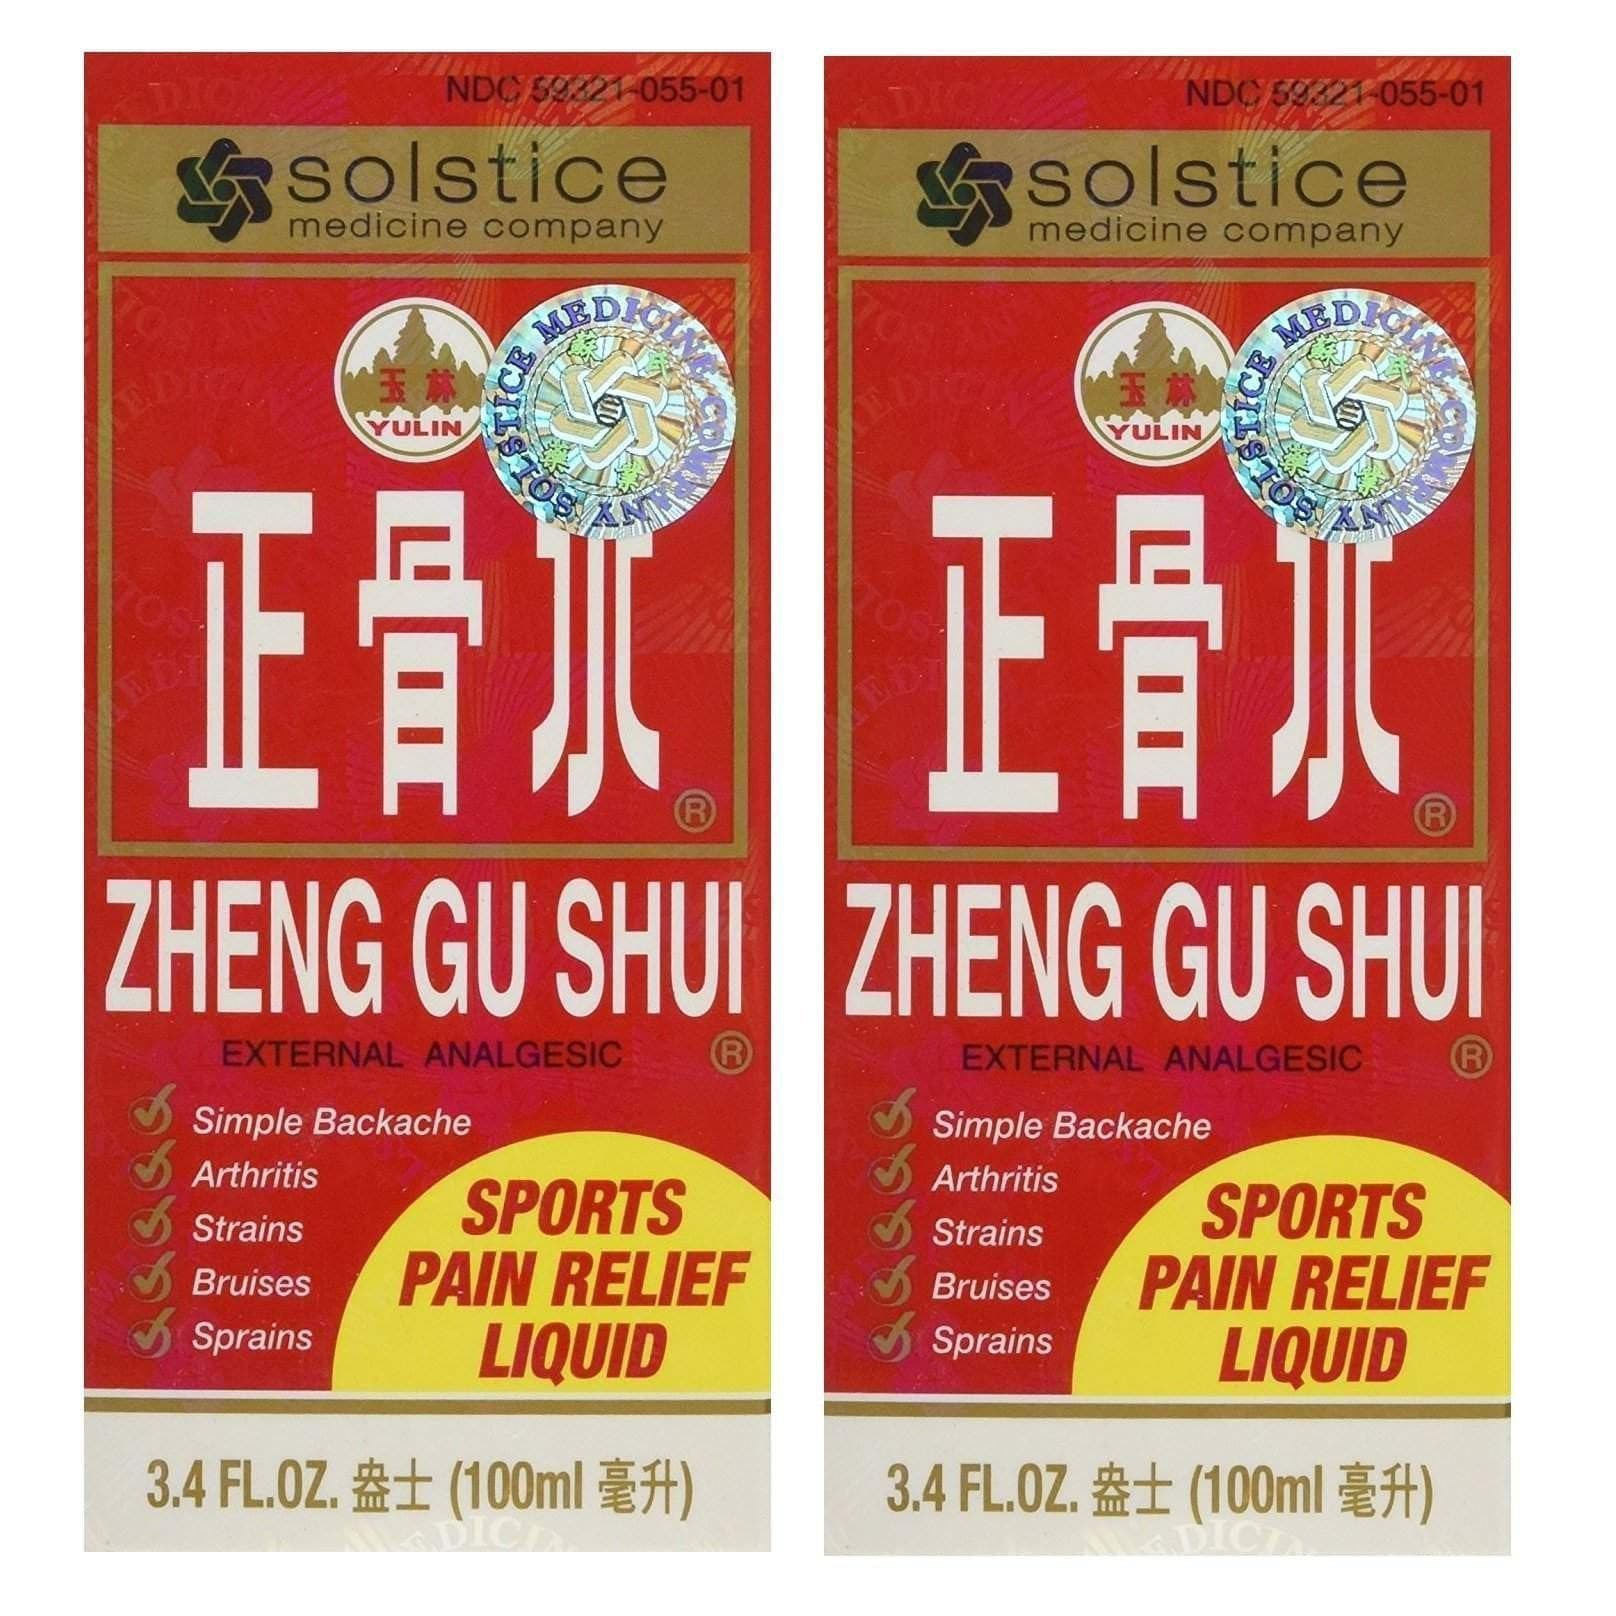 2 Bottles Zheng Gu Shui External Analgesic Lotion (L)(3.4 Fl Oz)-Buy at New Green Nutrition